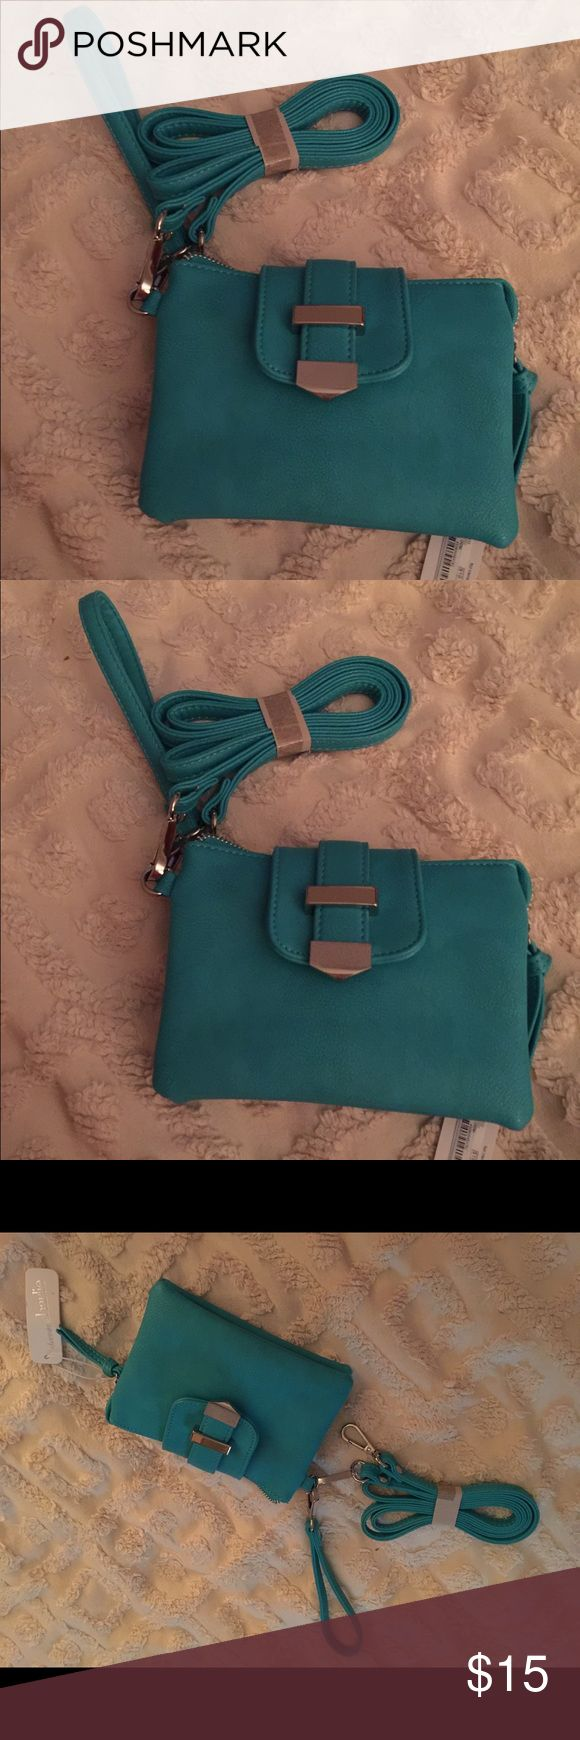 Cute Crossbody wristlet Bag 7x5 Turquoise Charming Charlie's Crossbody/wristlet bag Beautiful Turquoise color. Charming Charlie Bags Crossbody Bags